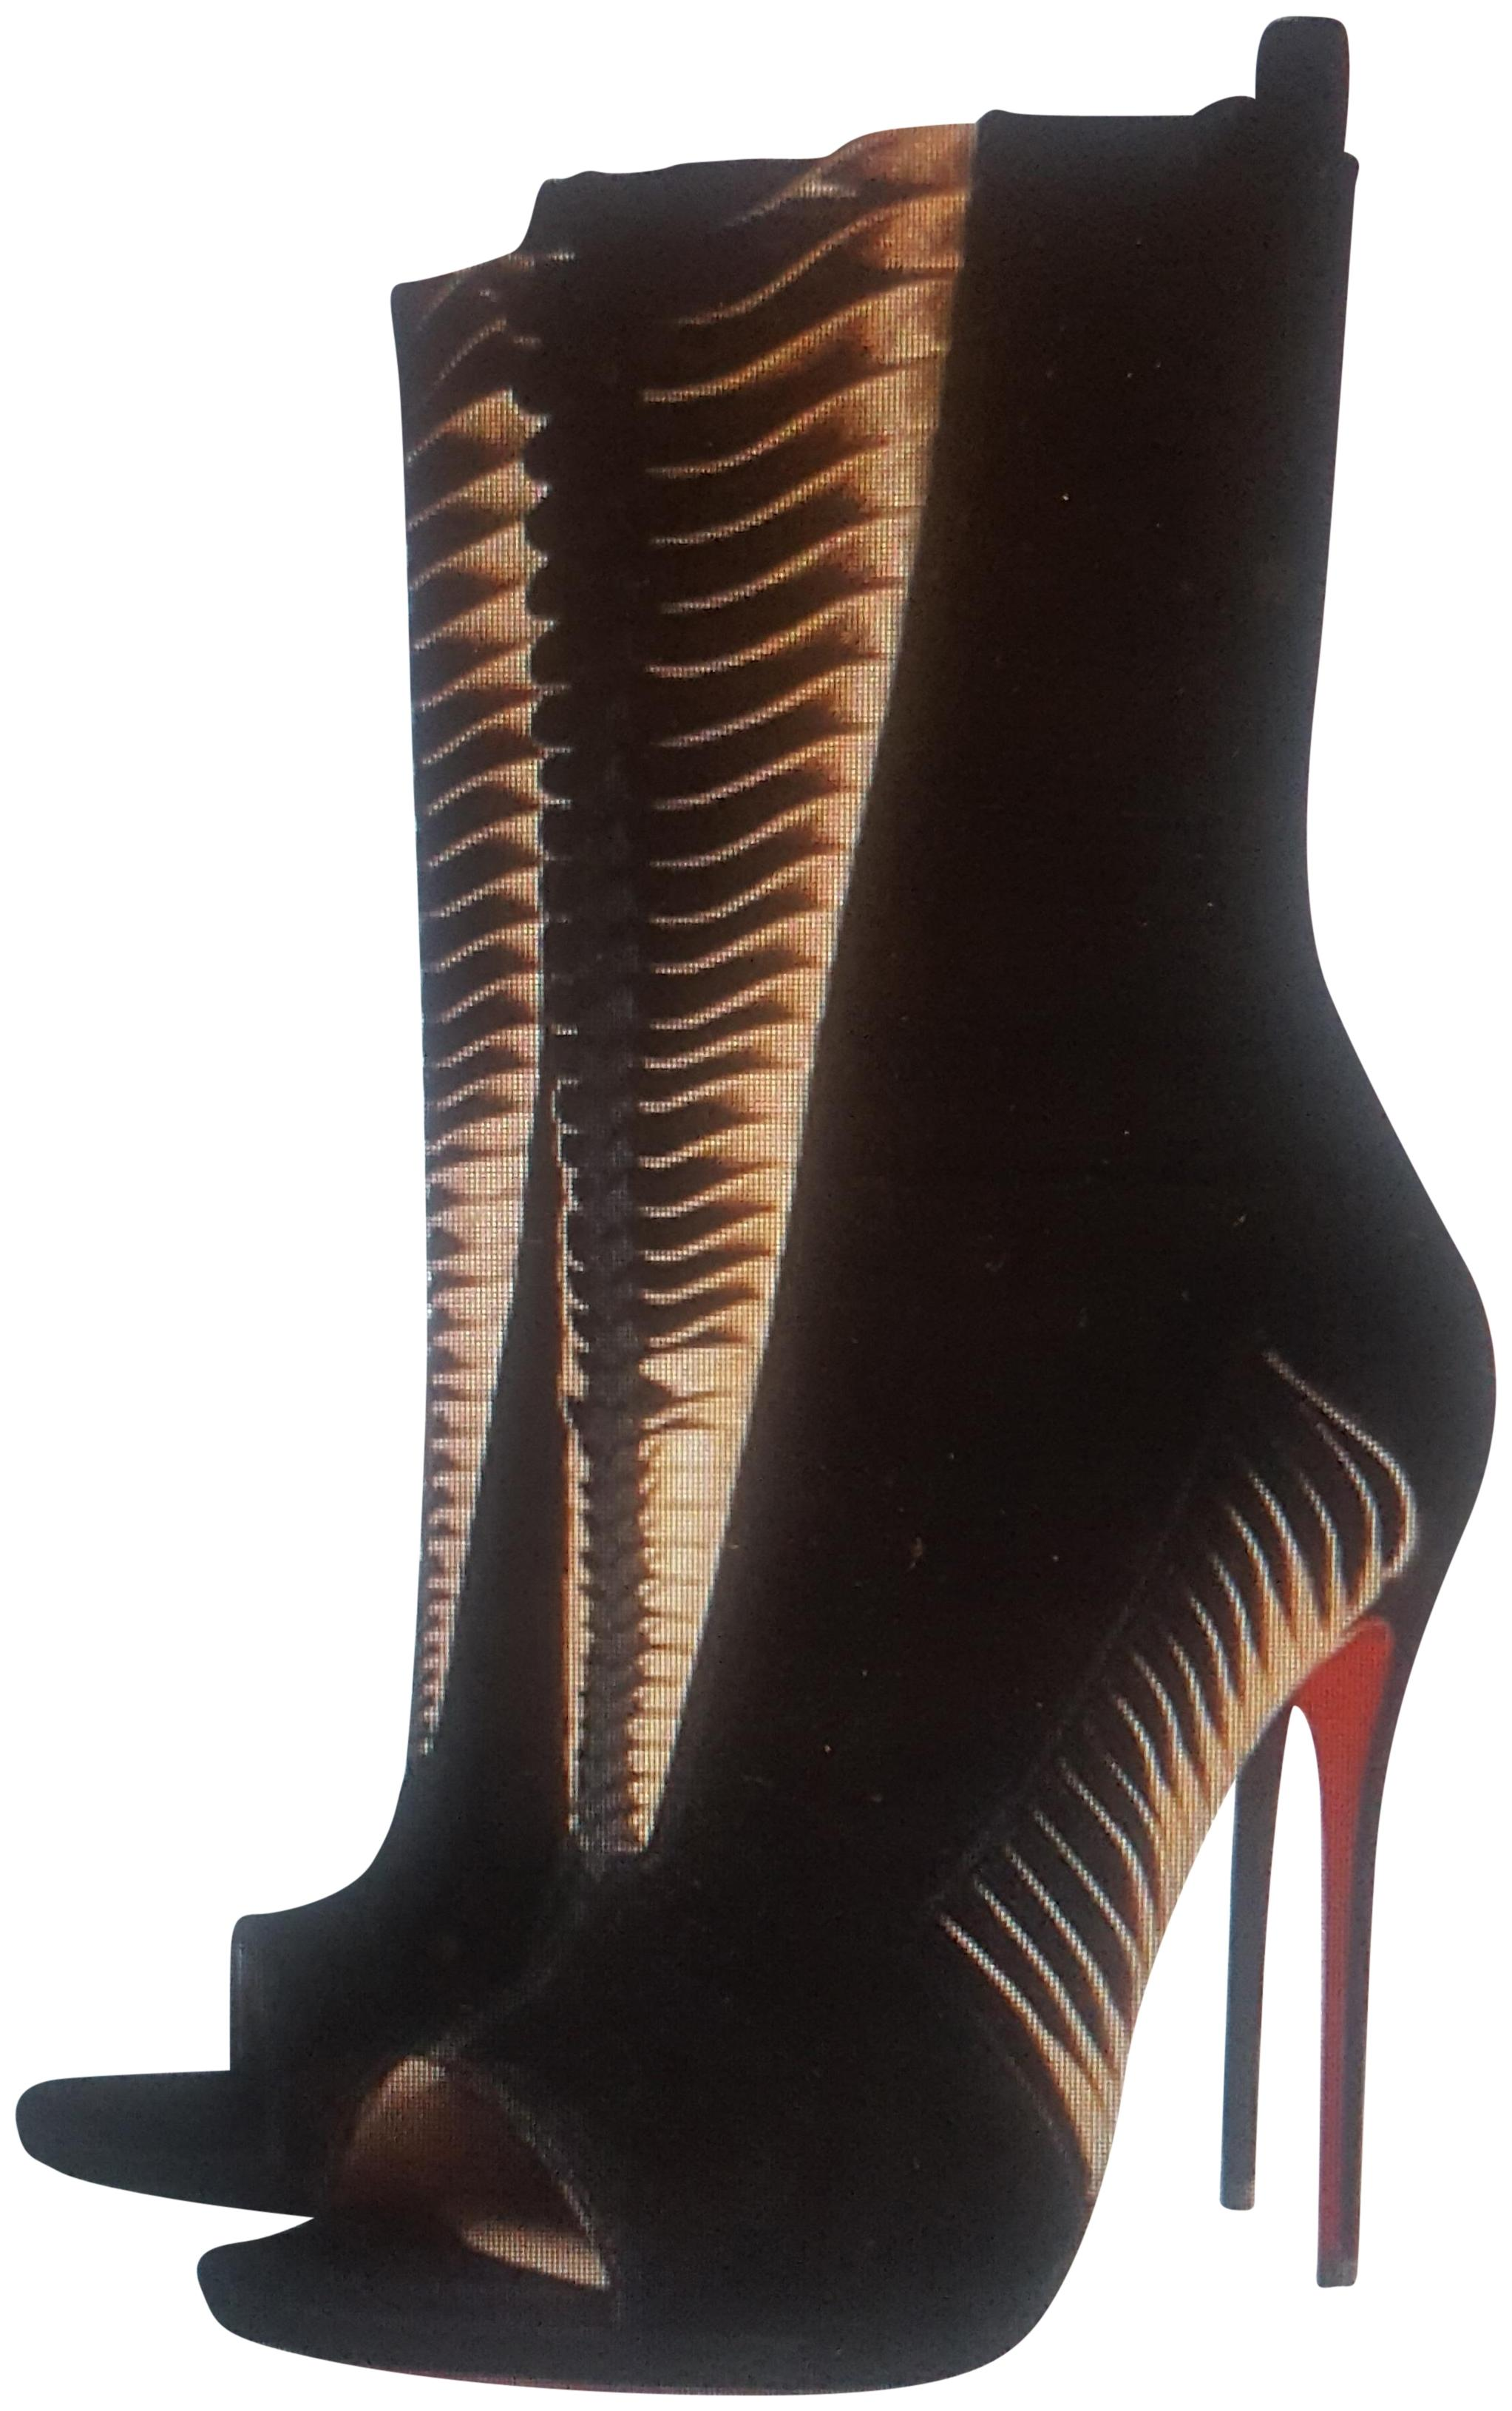 bed10c40be4 Christian Louboutin Black Miss Circus 120 Suede Heel Boots Boots Boots Pumps  Size EU 40 (Approx. US 10) Regular (M